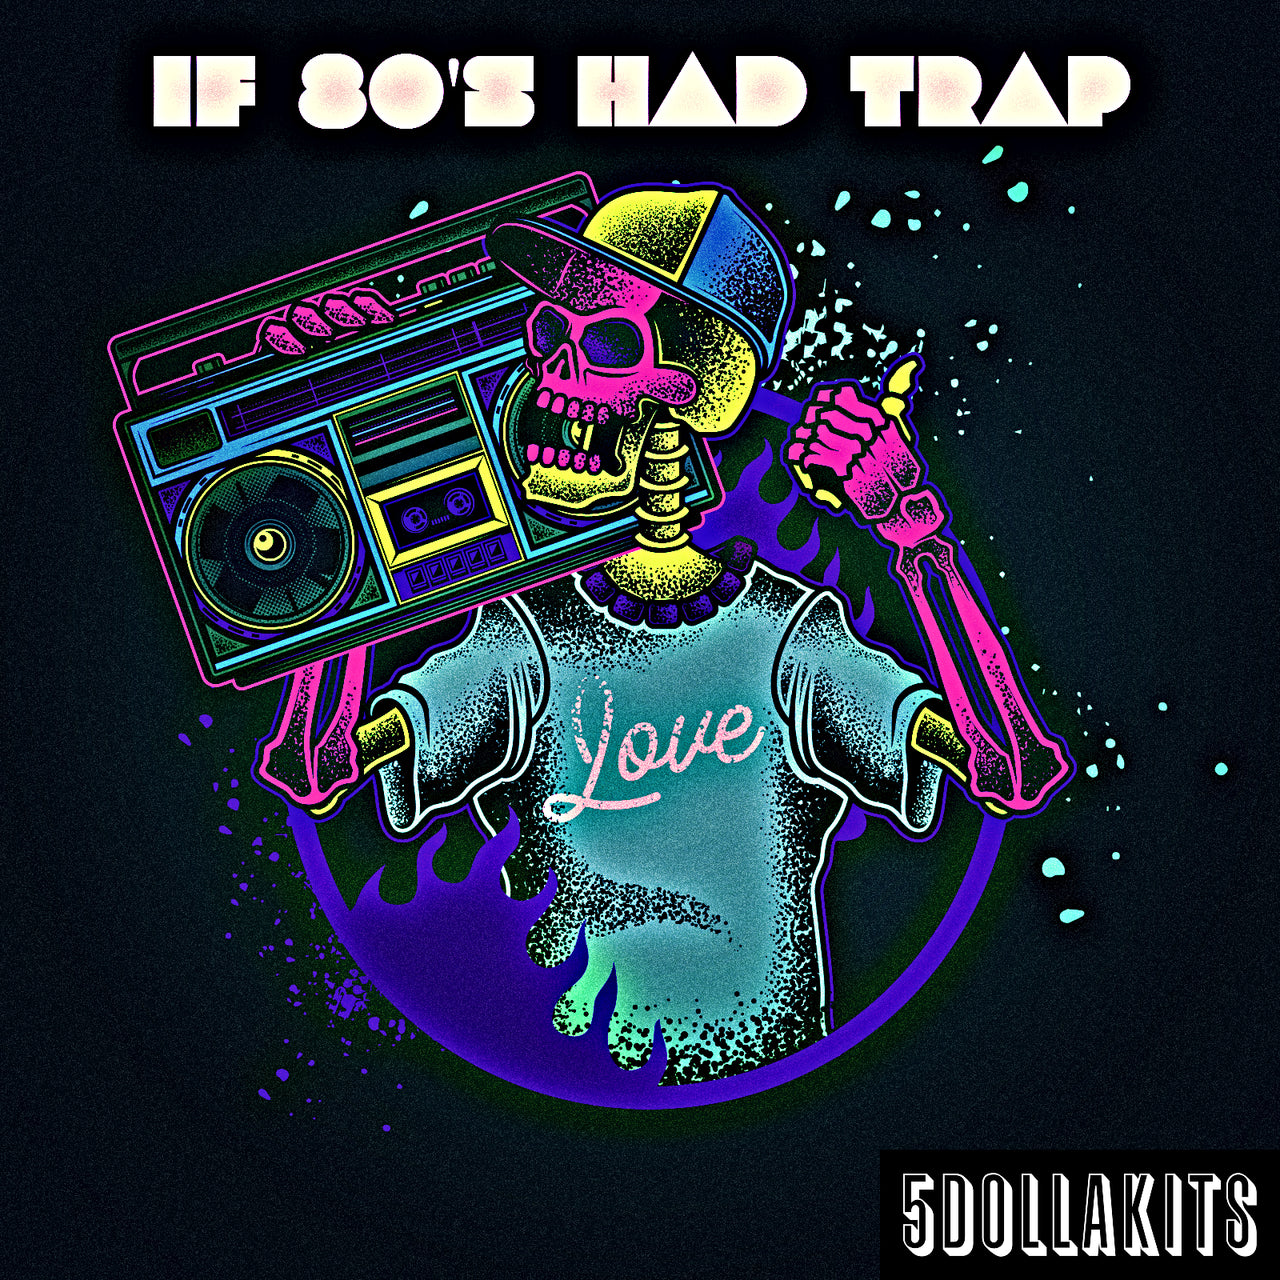 If 80's Had Trap